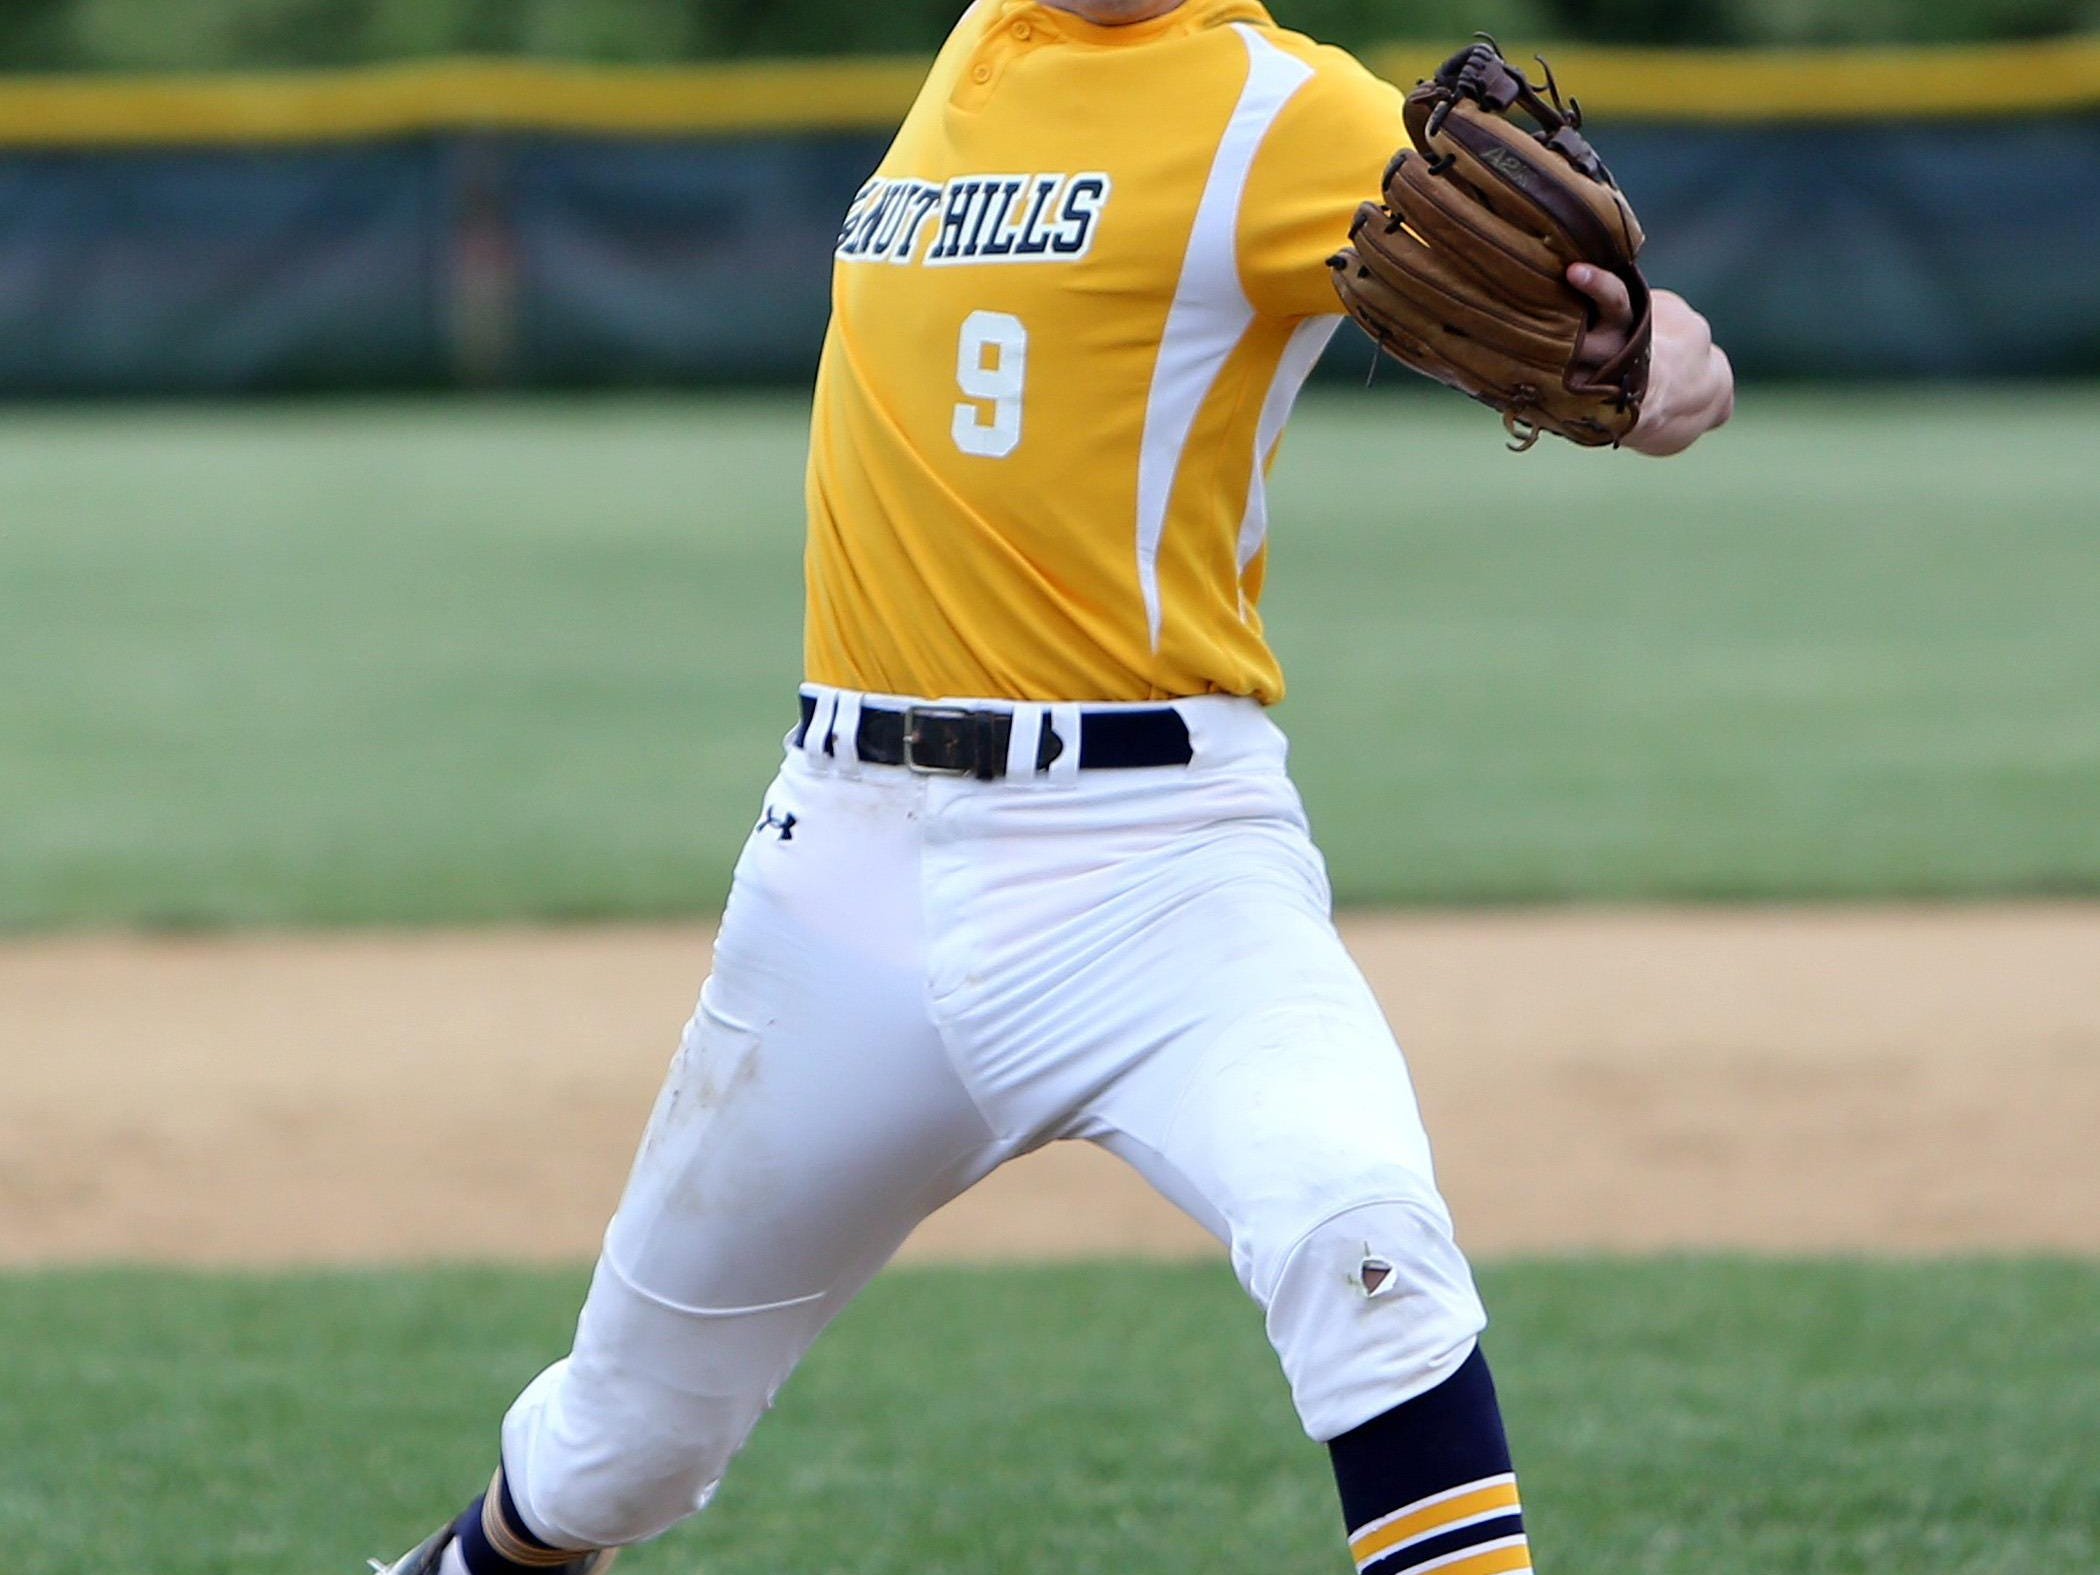 Walnut Hills pitcher Cole Murphy propels the ball forward against La Salle May 14.